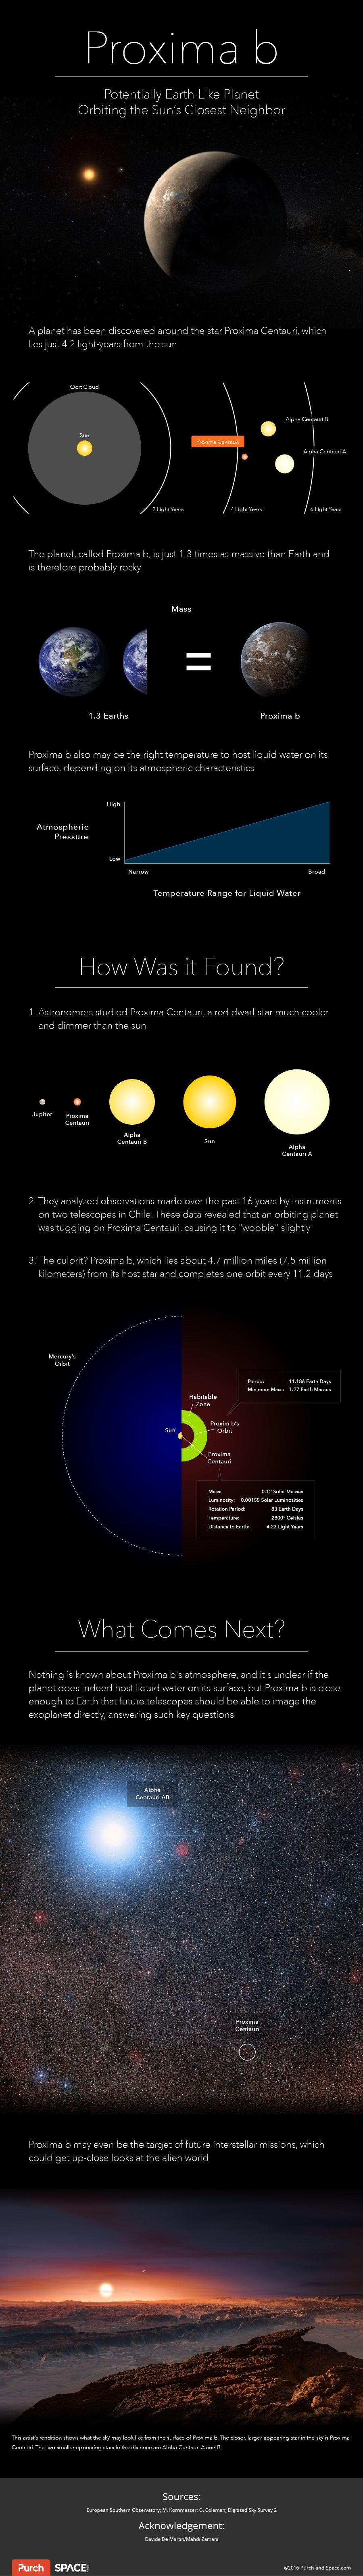 Proxima b: Is There Alien Life Just 'Down the Block,' or ...